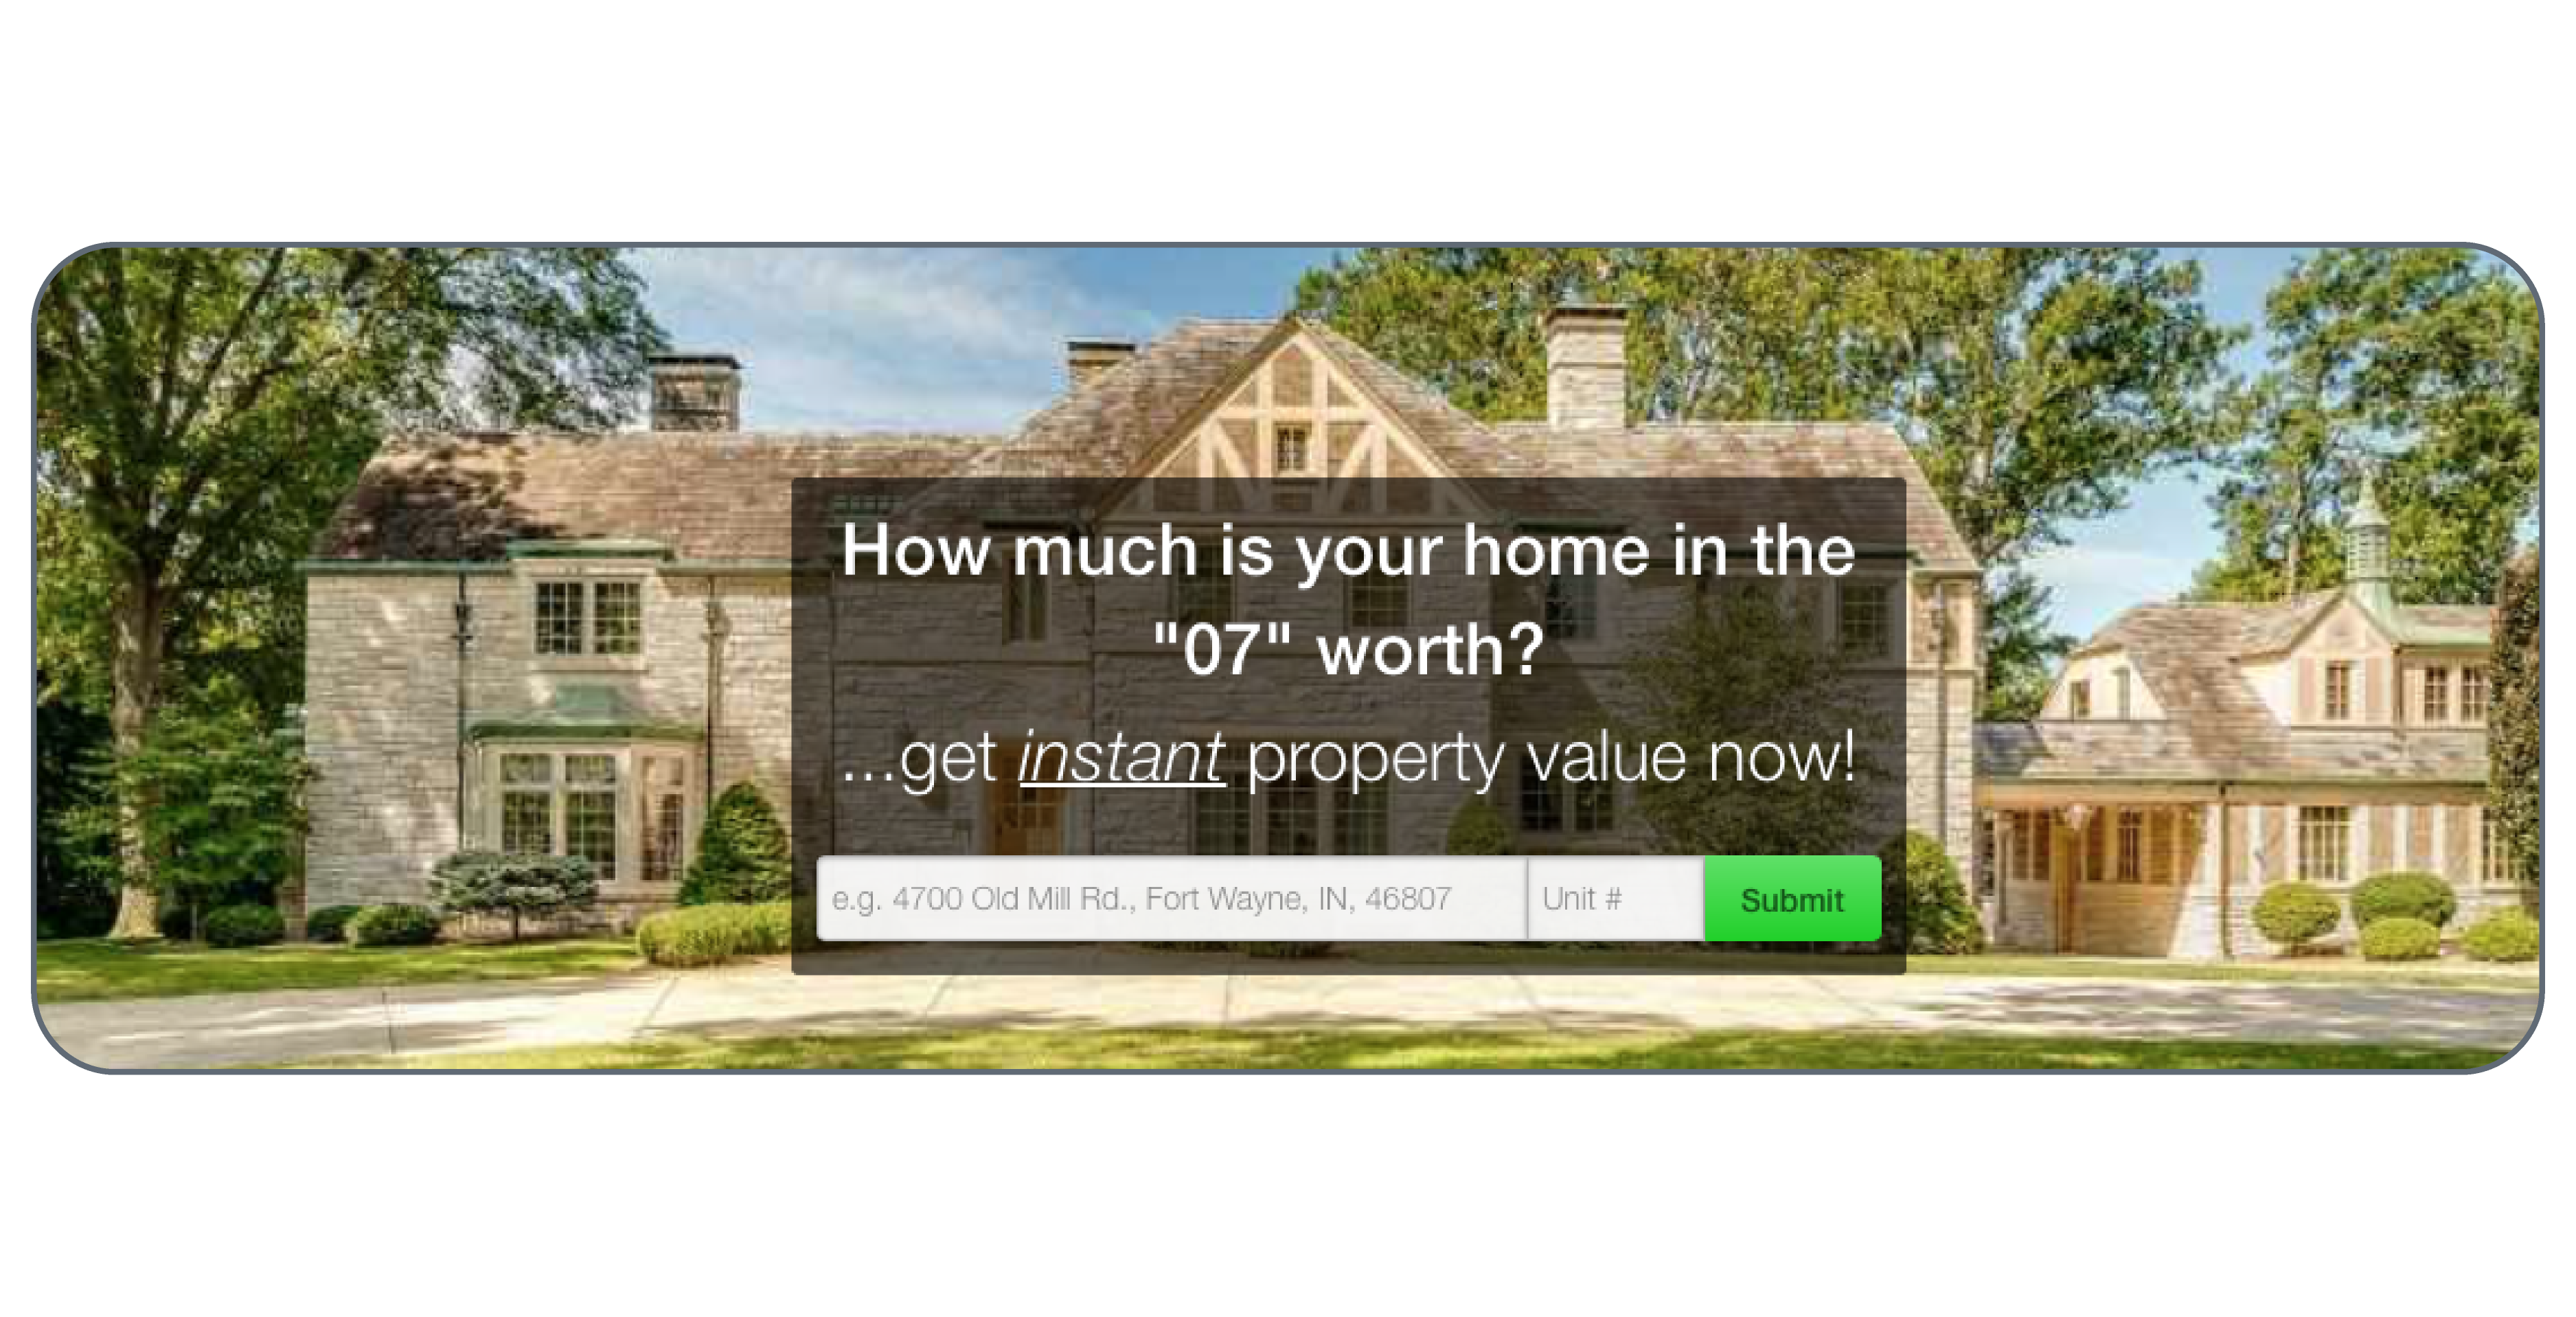 Find out the value of your 46807 Fort Wayne, Indiana home!